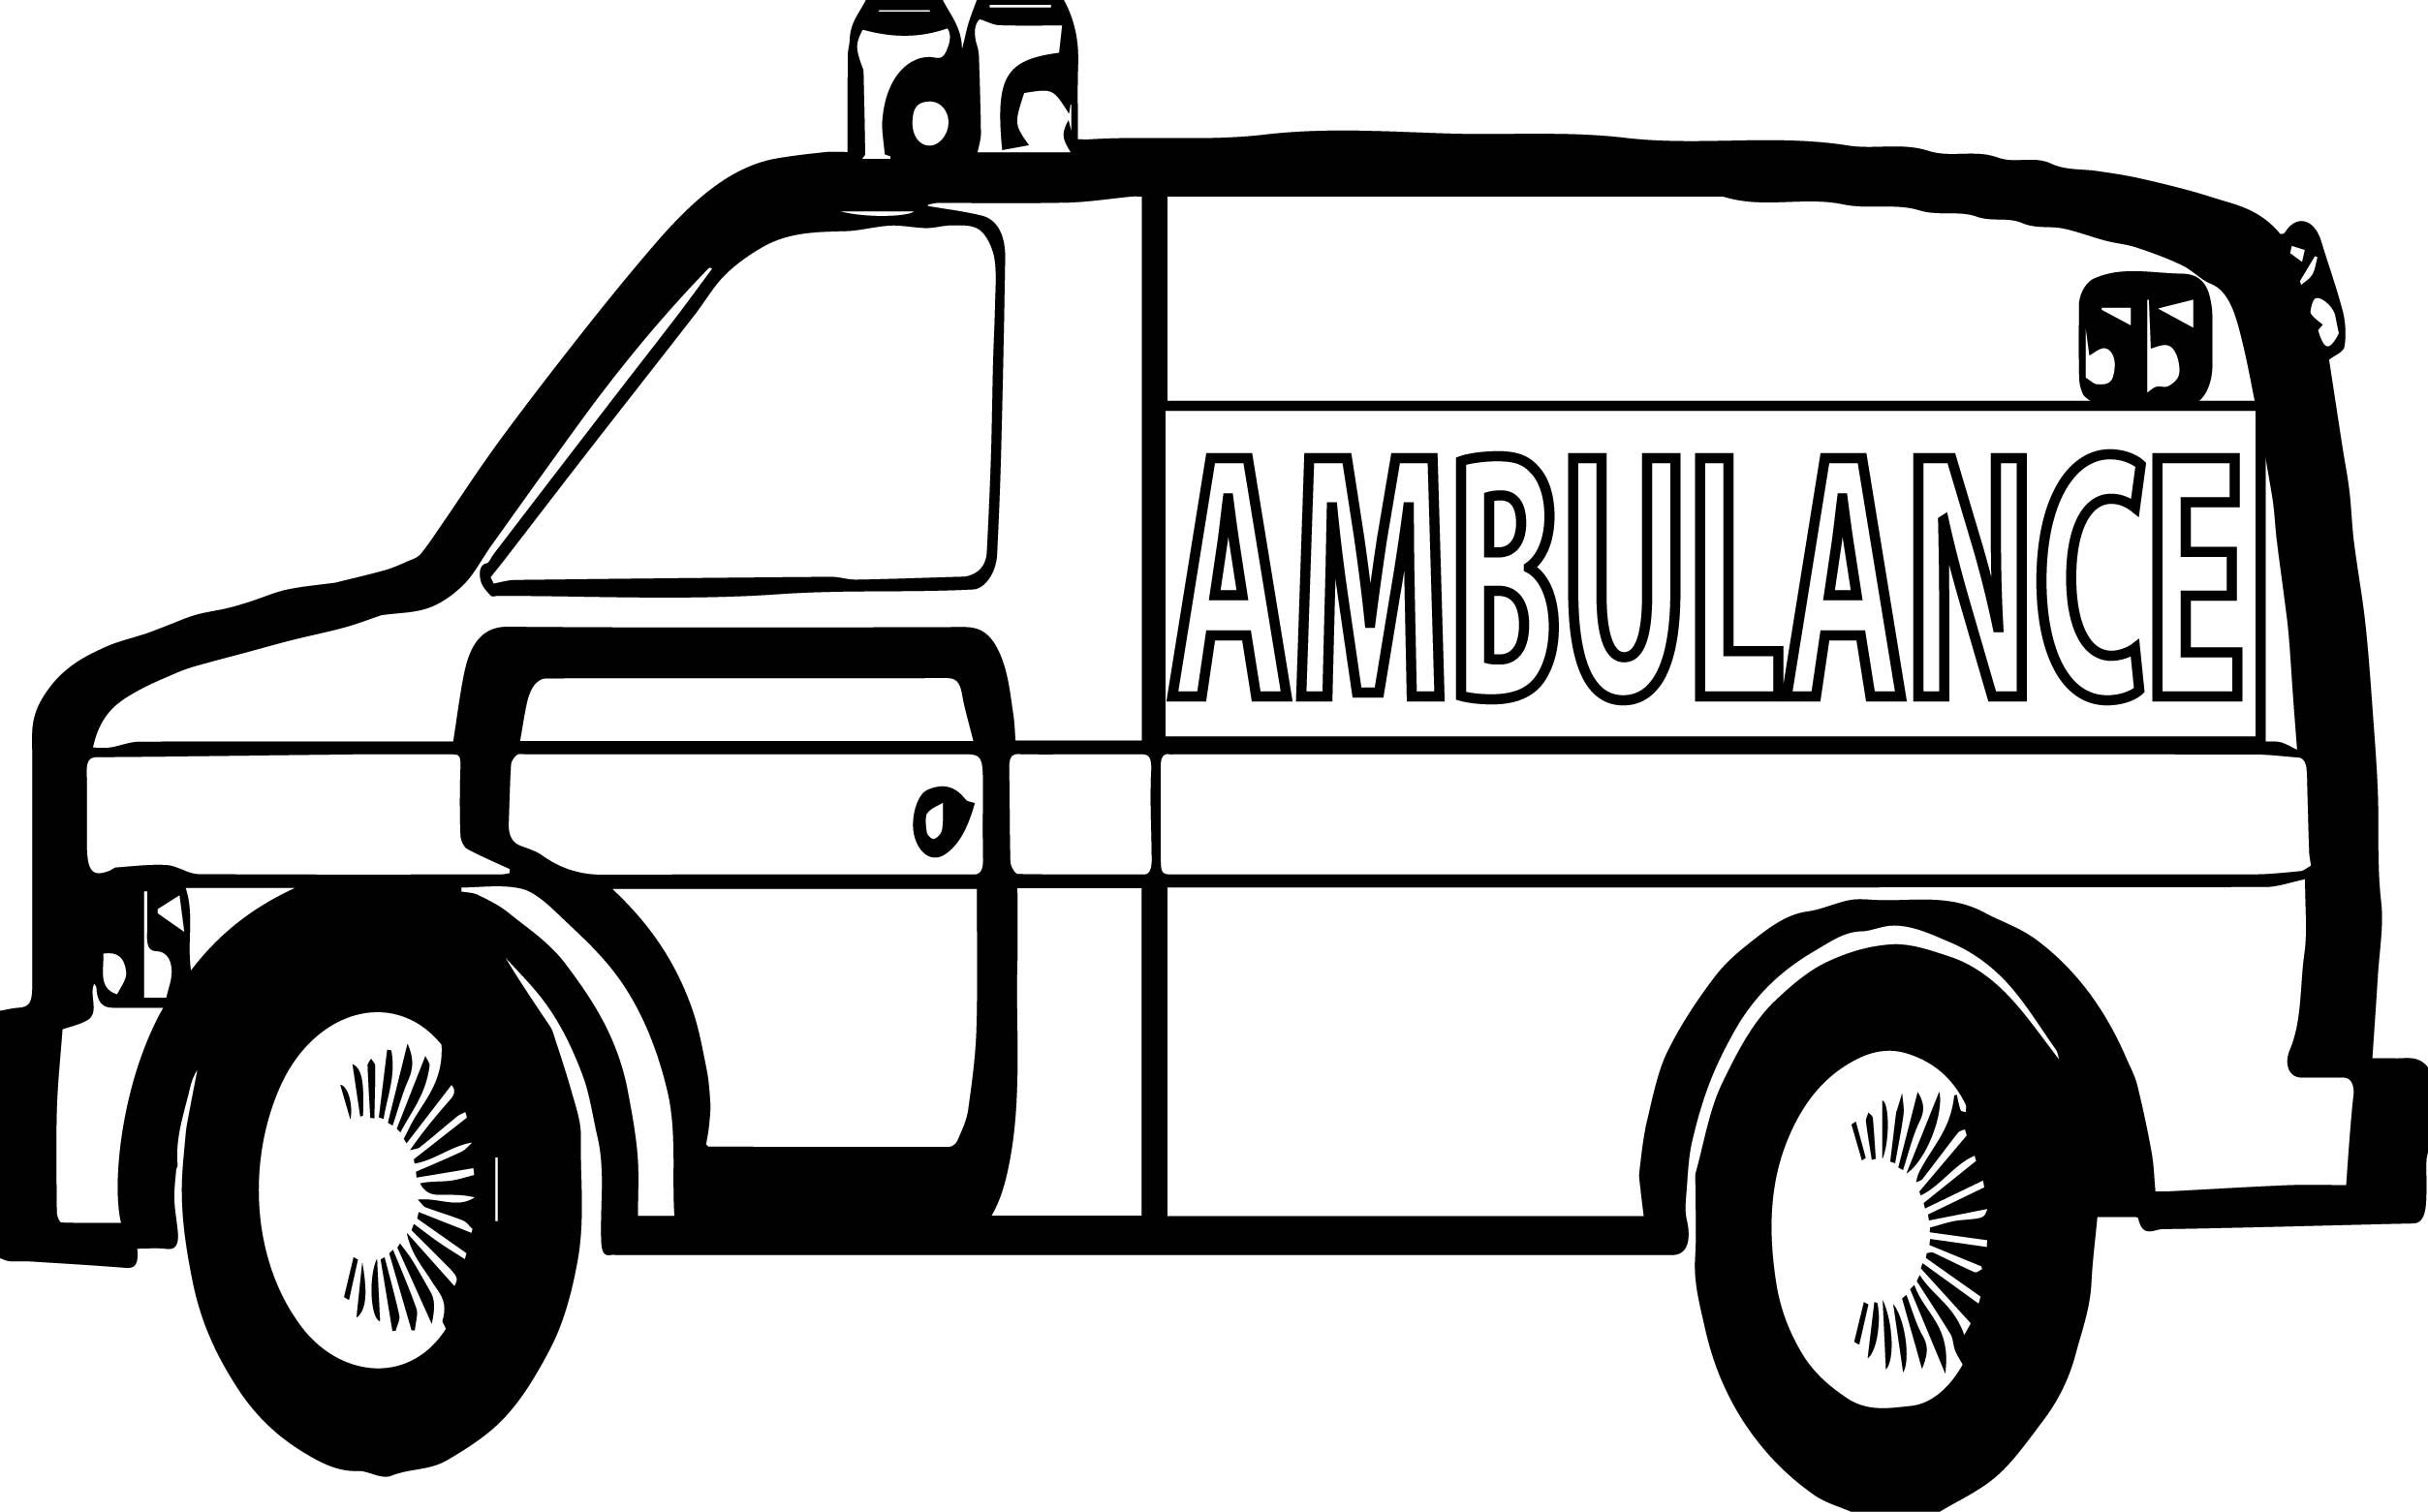 Lego ambulance car coloring page for kids, printable free